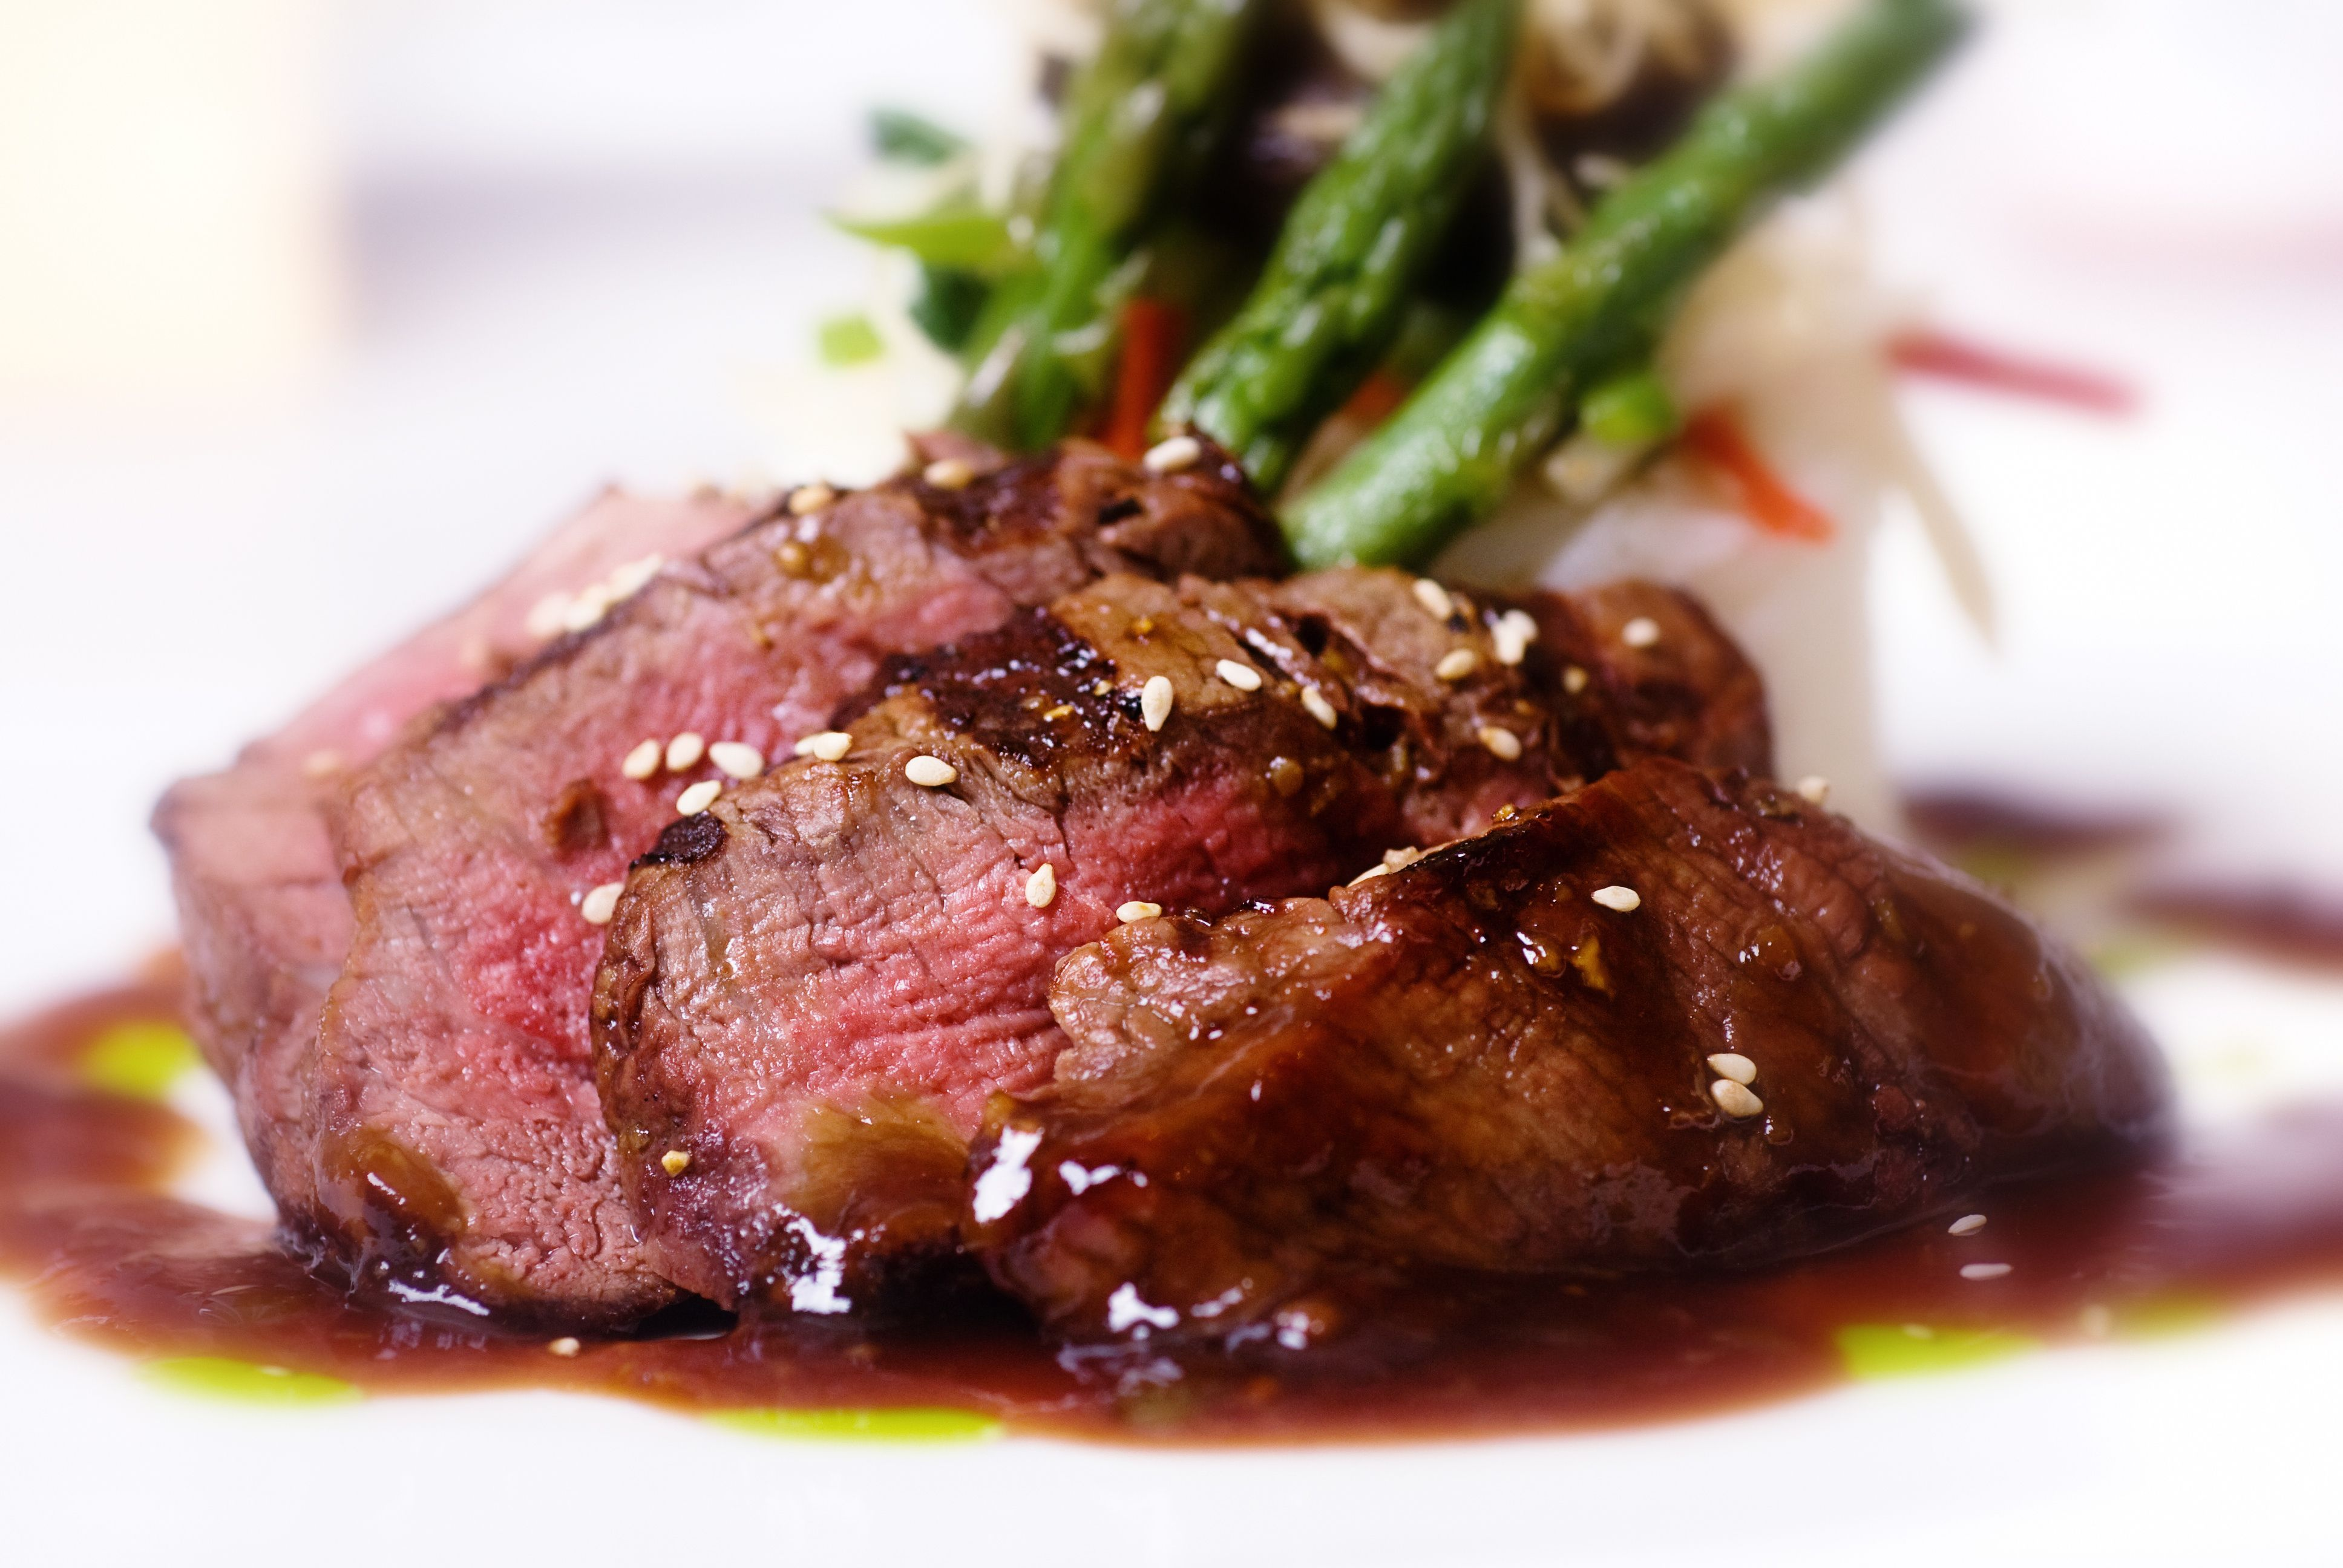 Steakhouse Style Dinners At Home Are Easy You Just Need The Right Meat Restaurants B With Images Bordelaise Sauce Venison Recipes Slow Roasted Beef Tenderloin